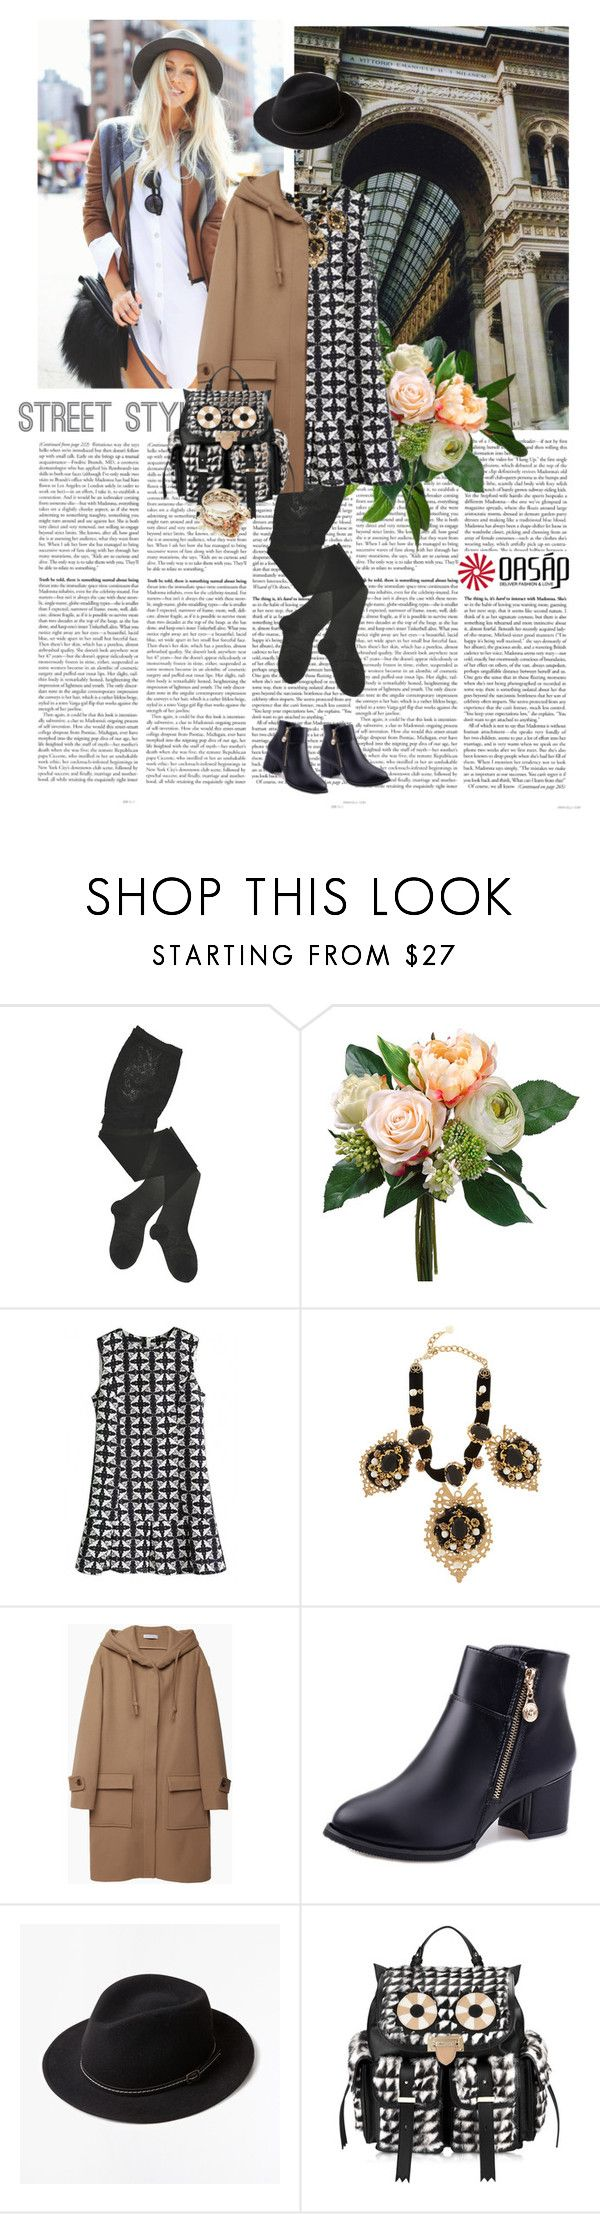 """Oasap 2.12"" by crazy-daisy1 ❤ liked on Polyvore featuring GET LOST, HYD, Dolce&Gabbana, J.W. Anderson, Zara Home, Aspinal of London and oasap"